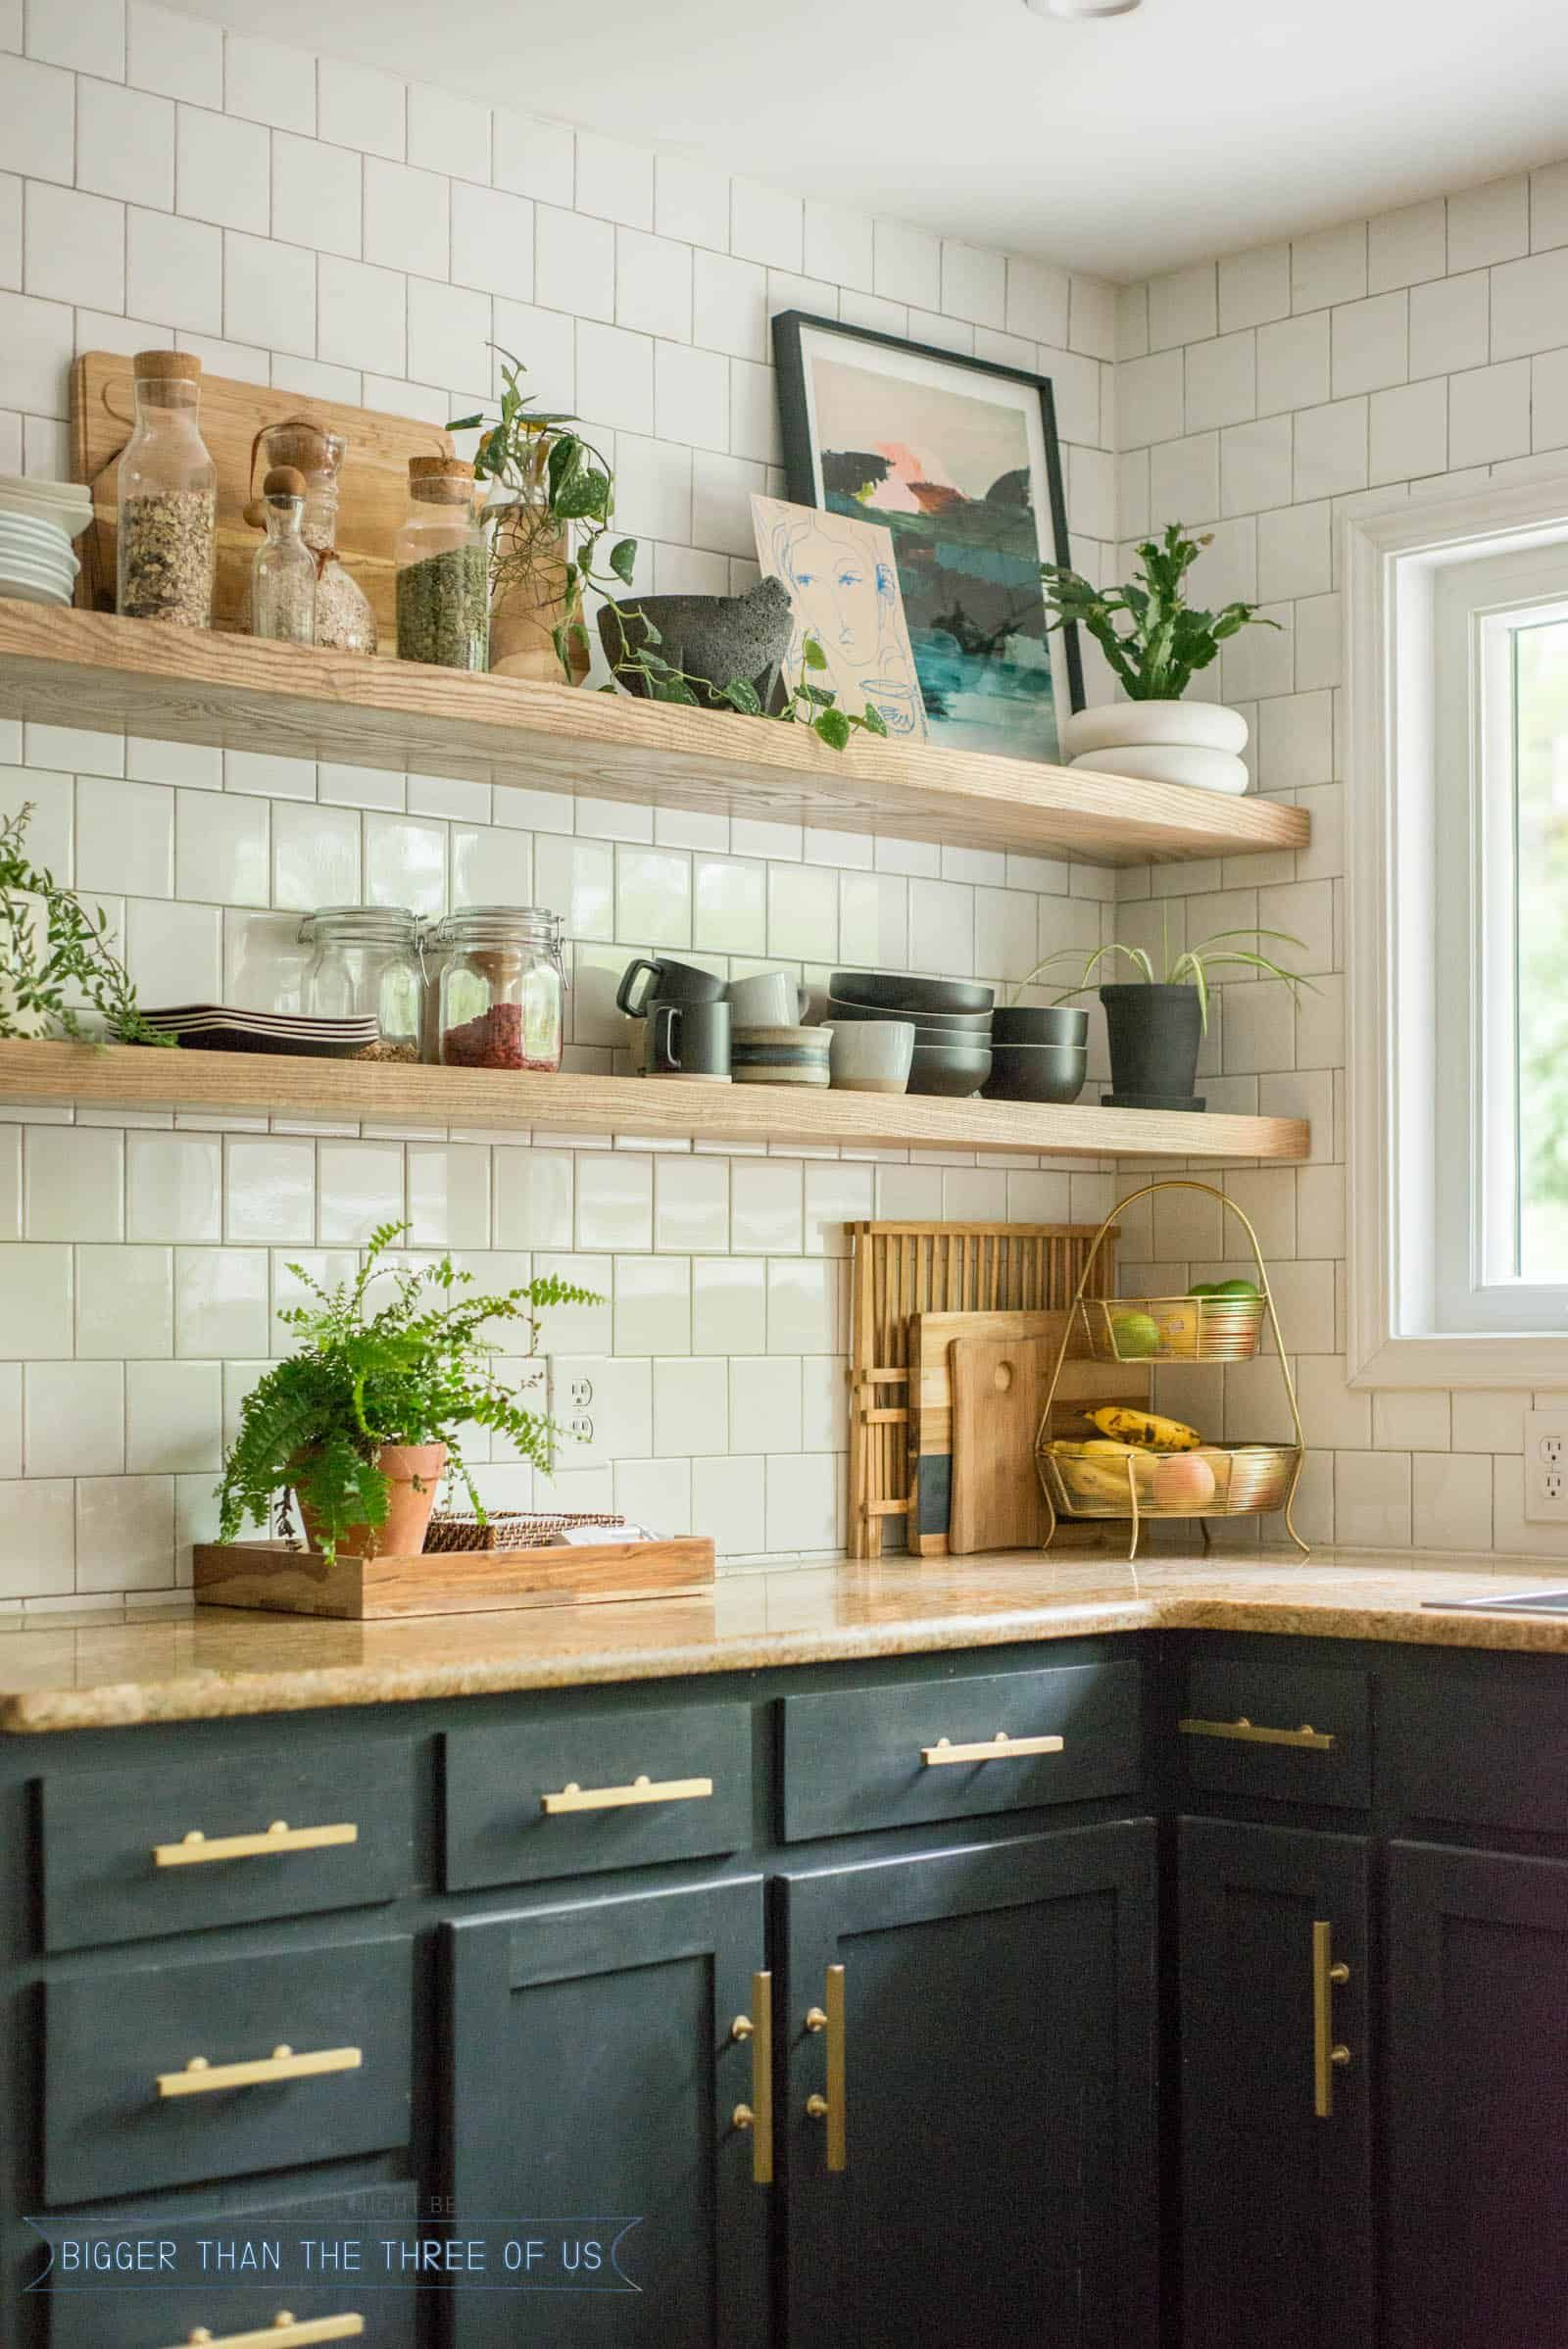 Kitchen Storage On Open Shelving: DIY Open Shelving Kitchen Guide